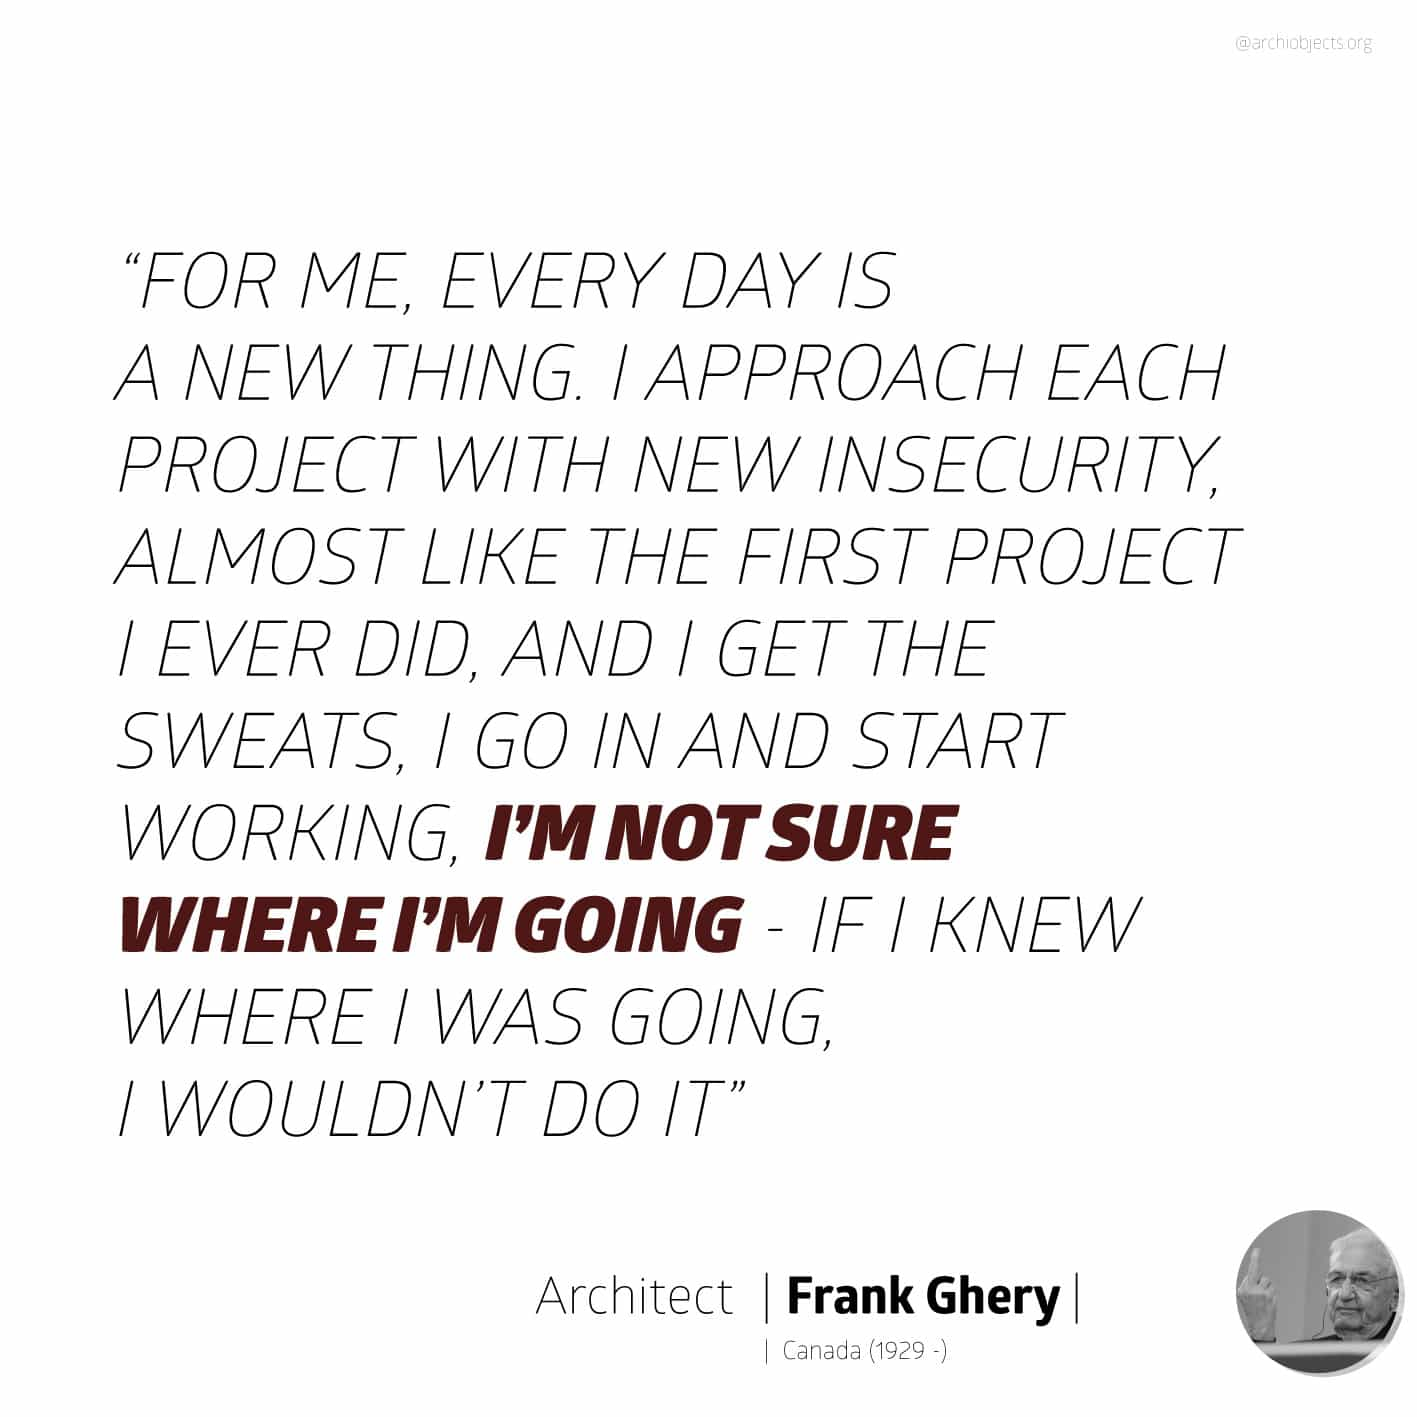 frank ghery quote